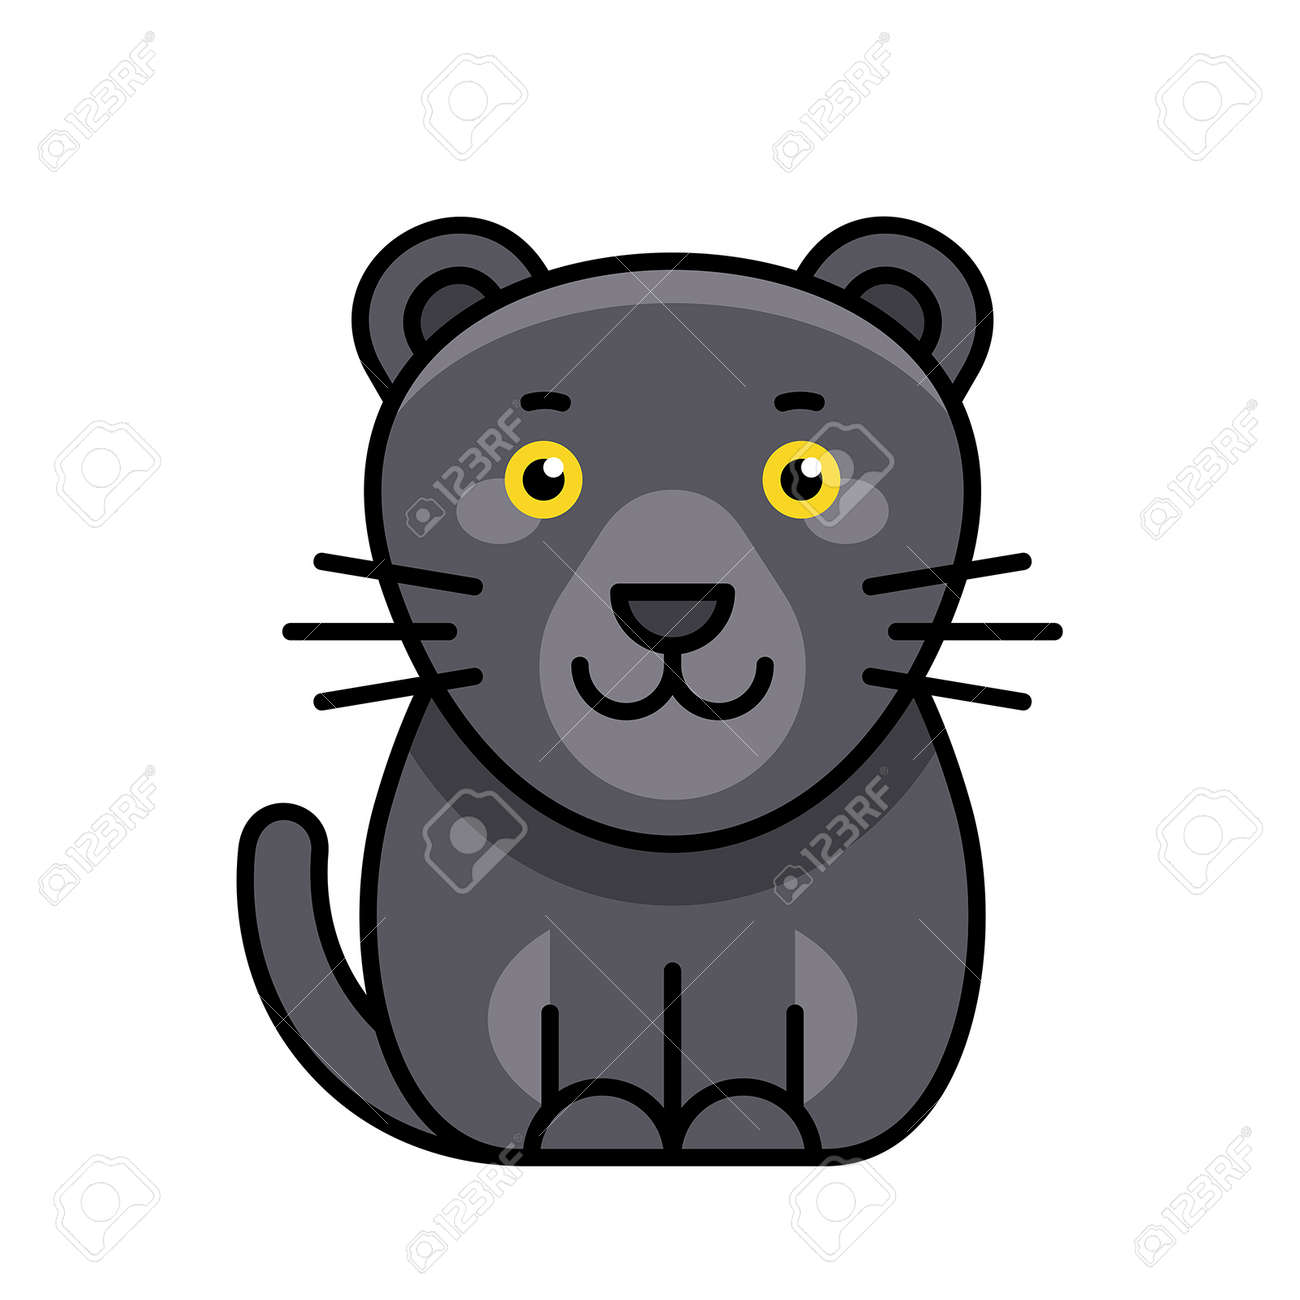 Panther icon. Icon design. Template elements - 171231651